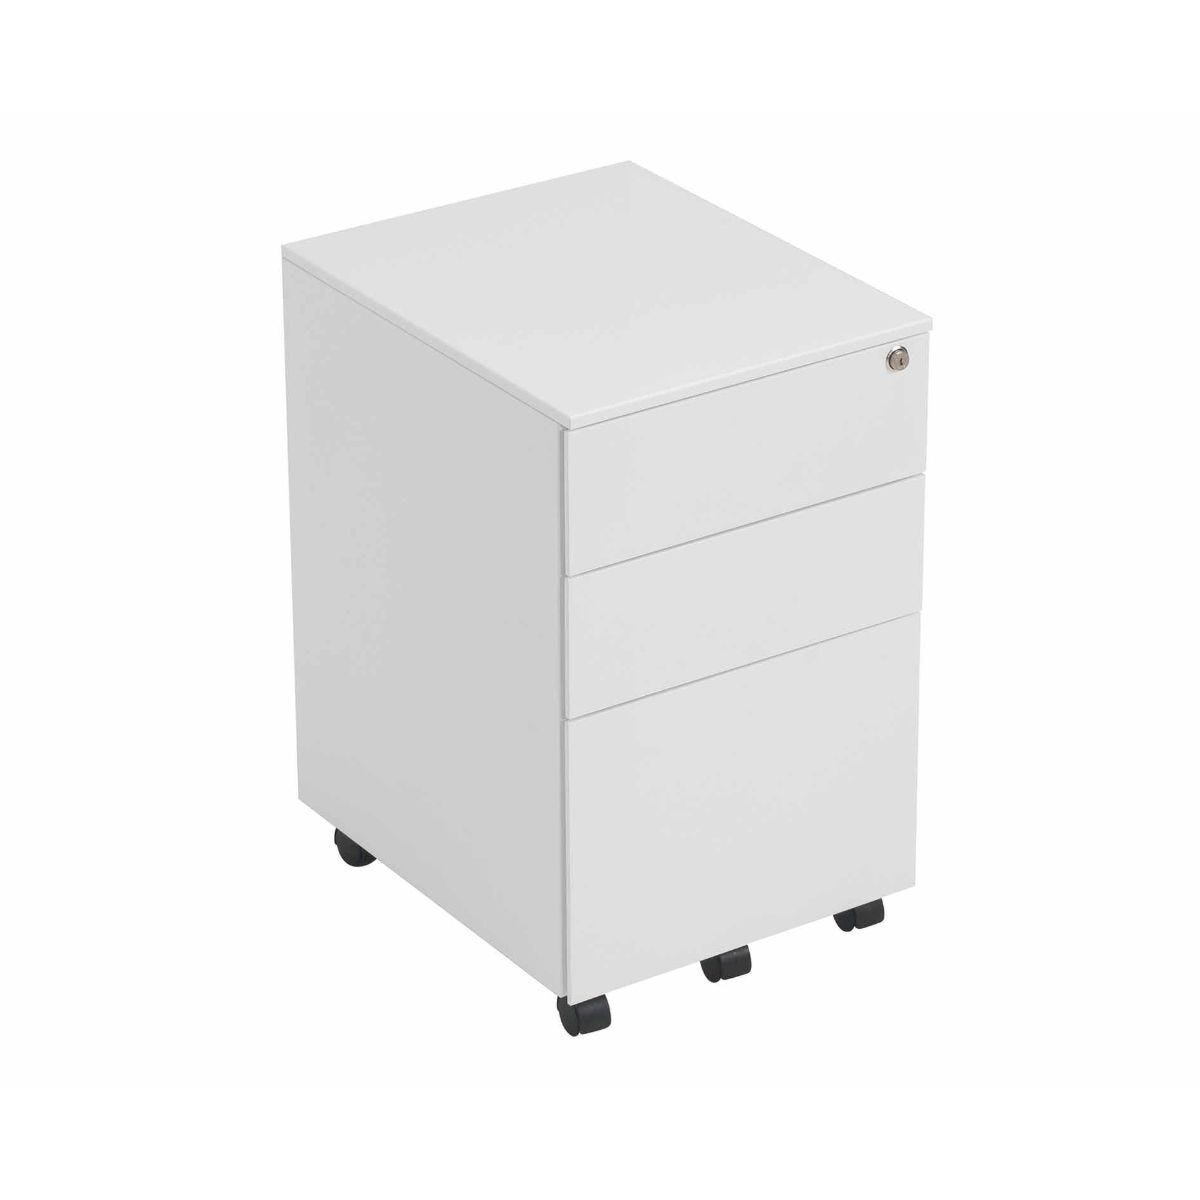 TC Office Talos Steel 3 Drawer Mobile Pedestal with Filing Drawer White